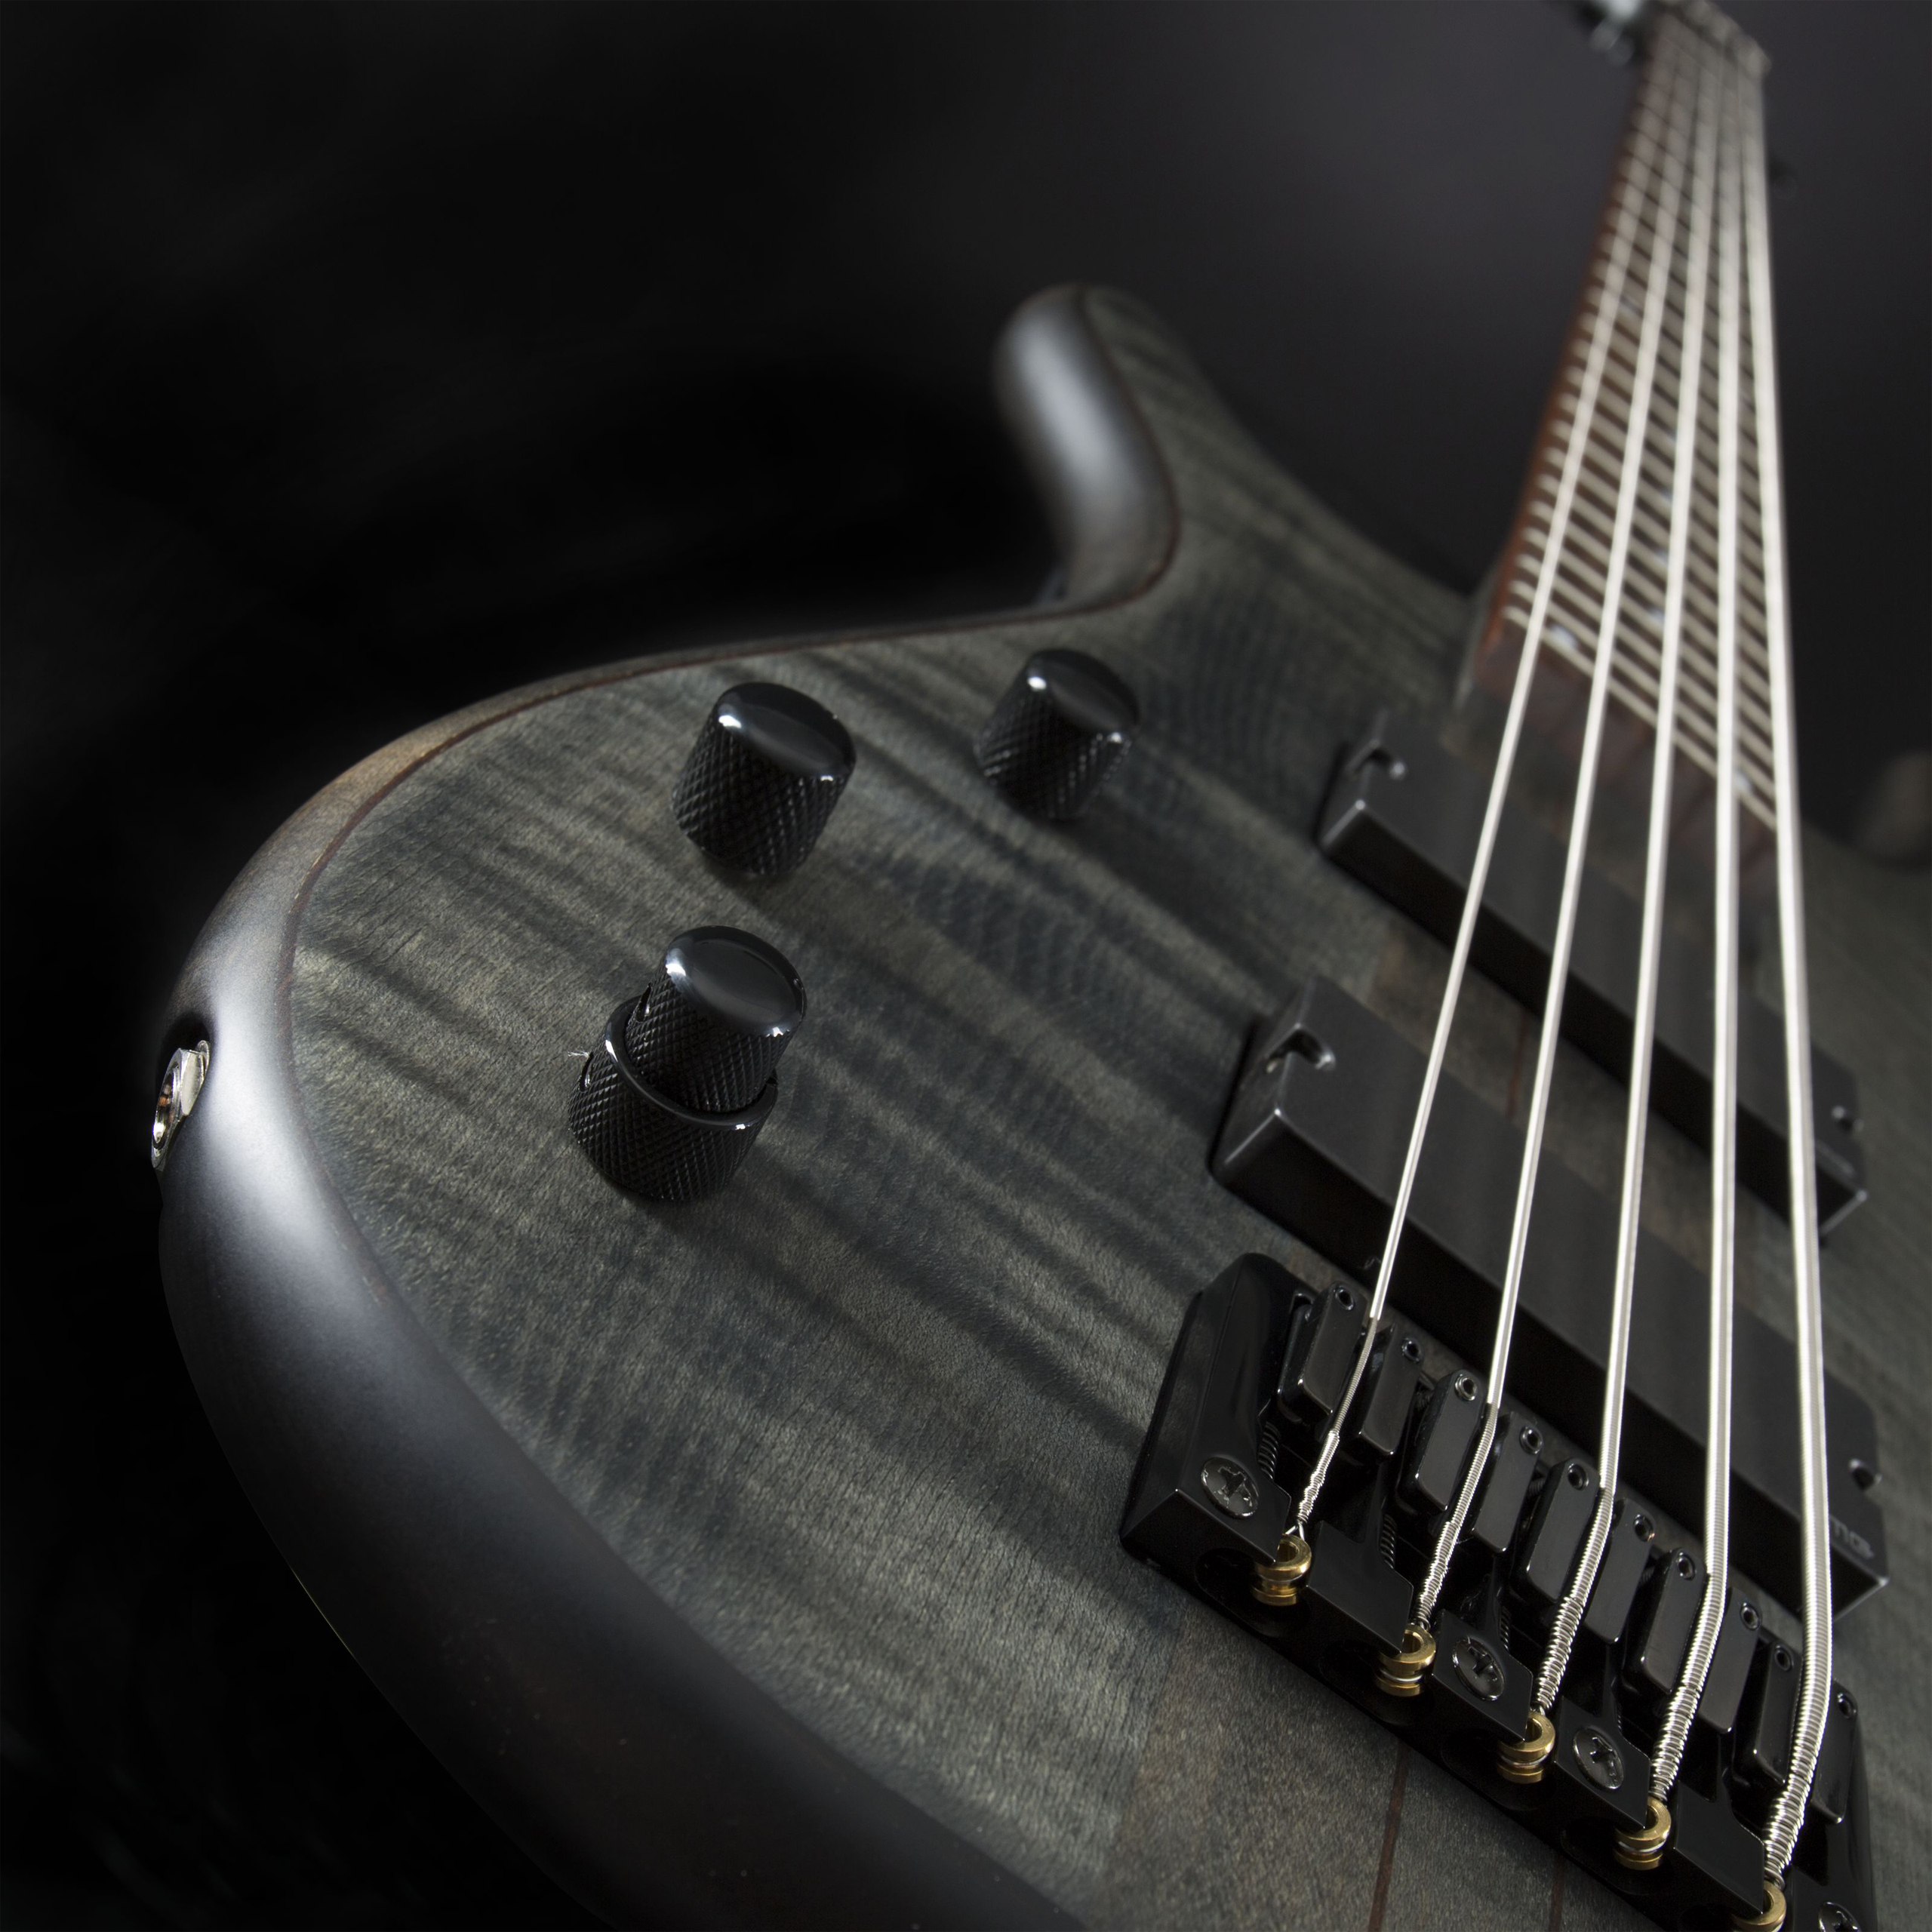 Fame Baphomet NTB 5 LE Graphite Satin LH Limited Edition